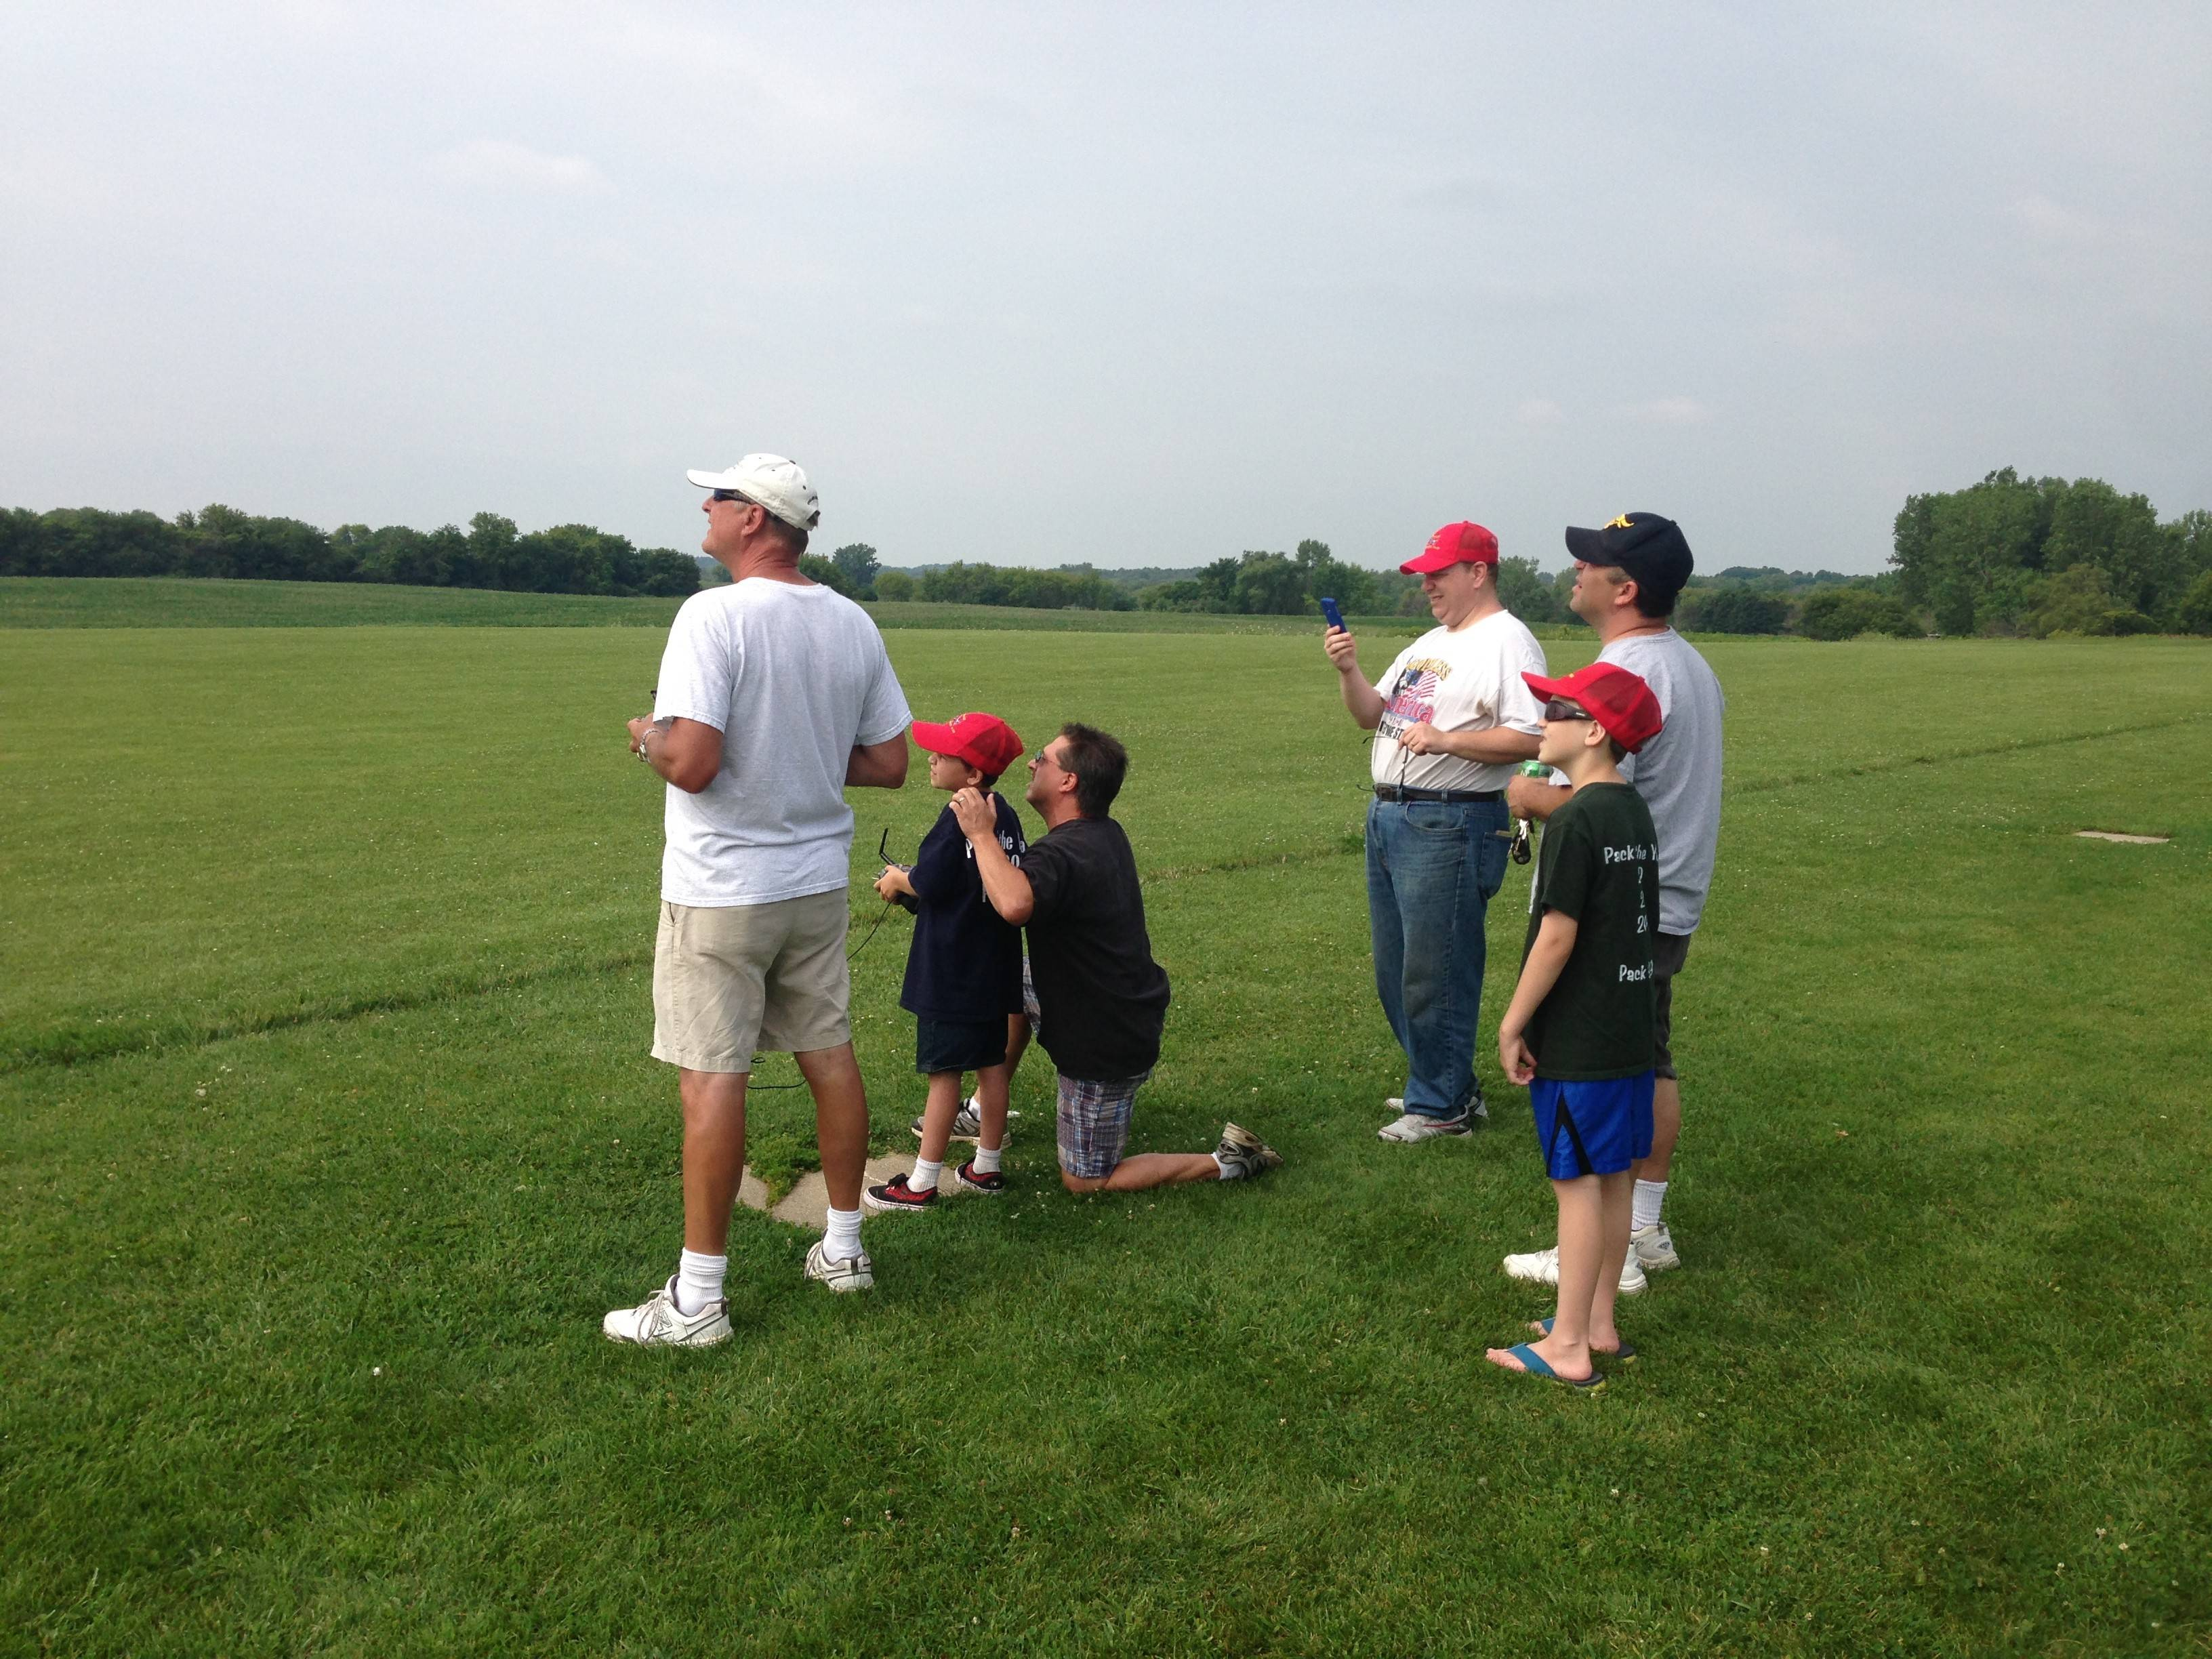 The Tri-Village RC Club hosts Cub Scout Troop 397 from Hoffman Estates and Schaumburg to a morning of flying radio control airplanes at the Poplar Creek Model Airplane Flying Field in Hoffman Estates on July 26.